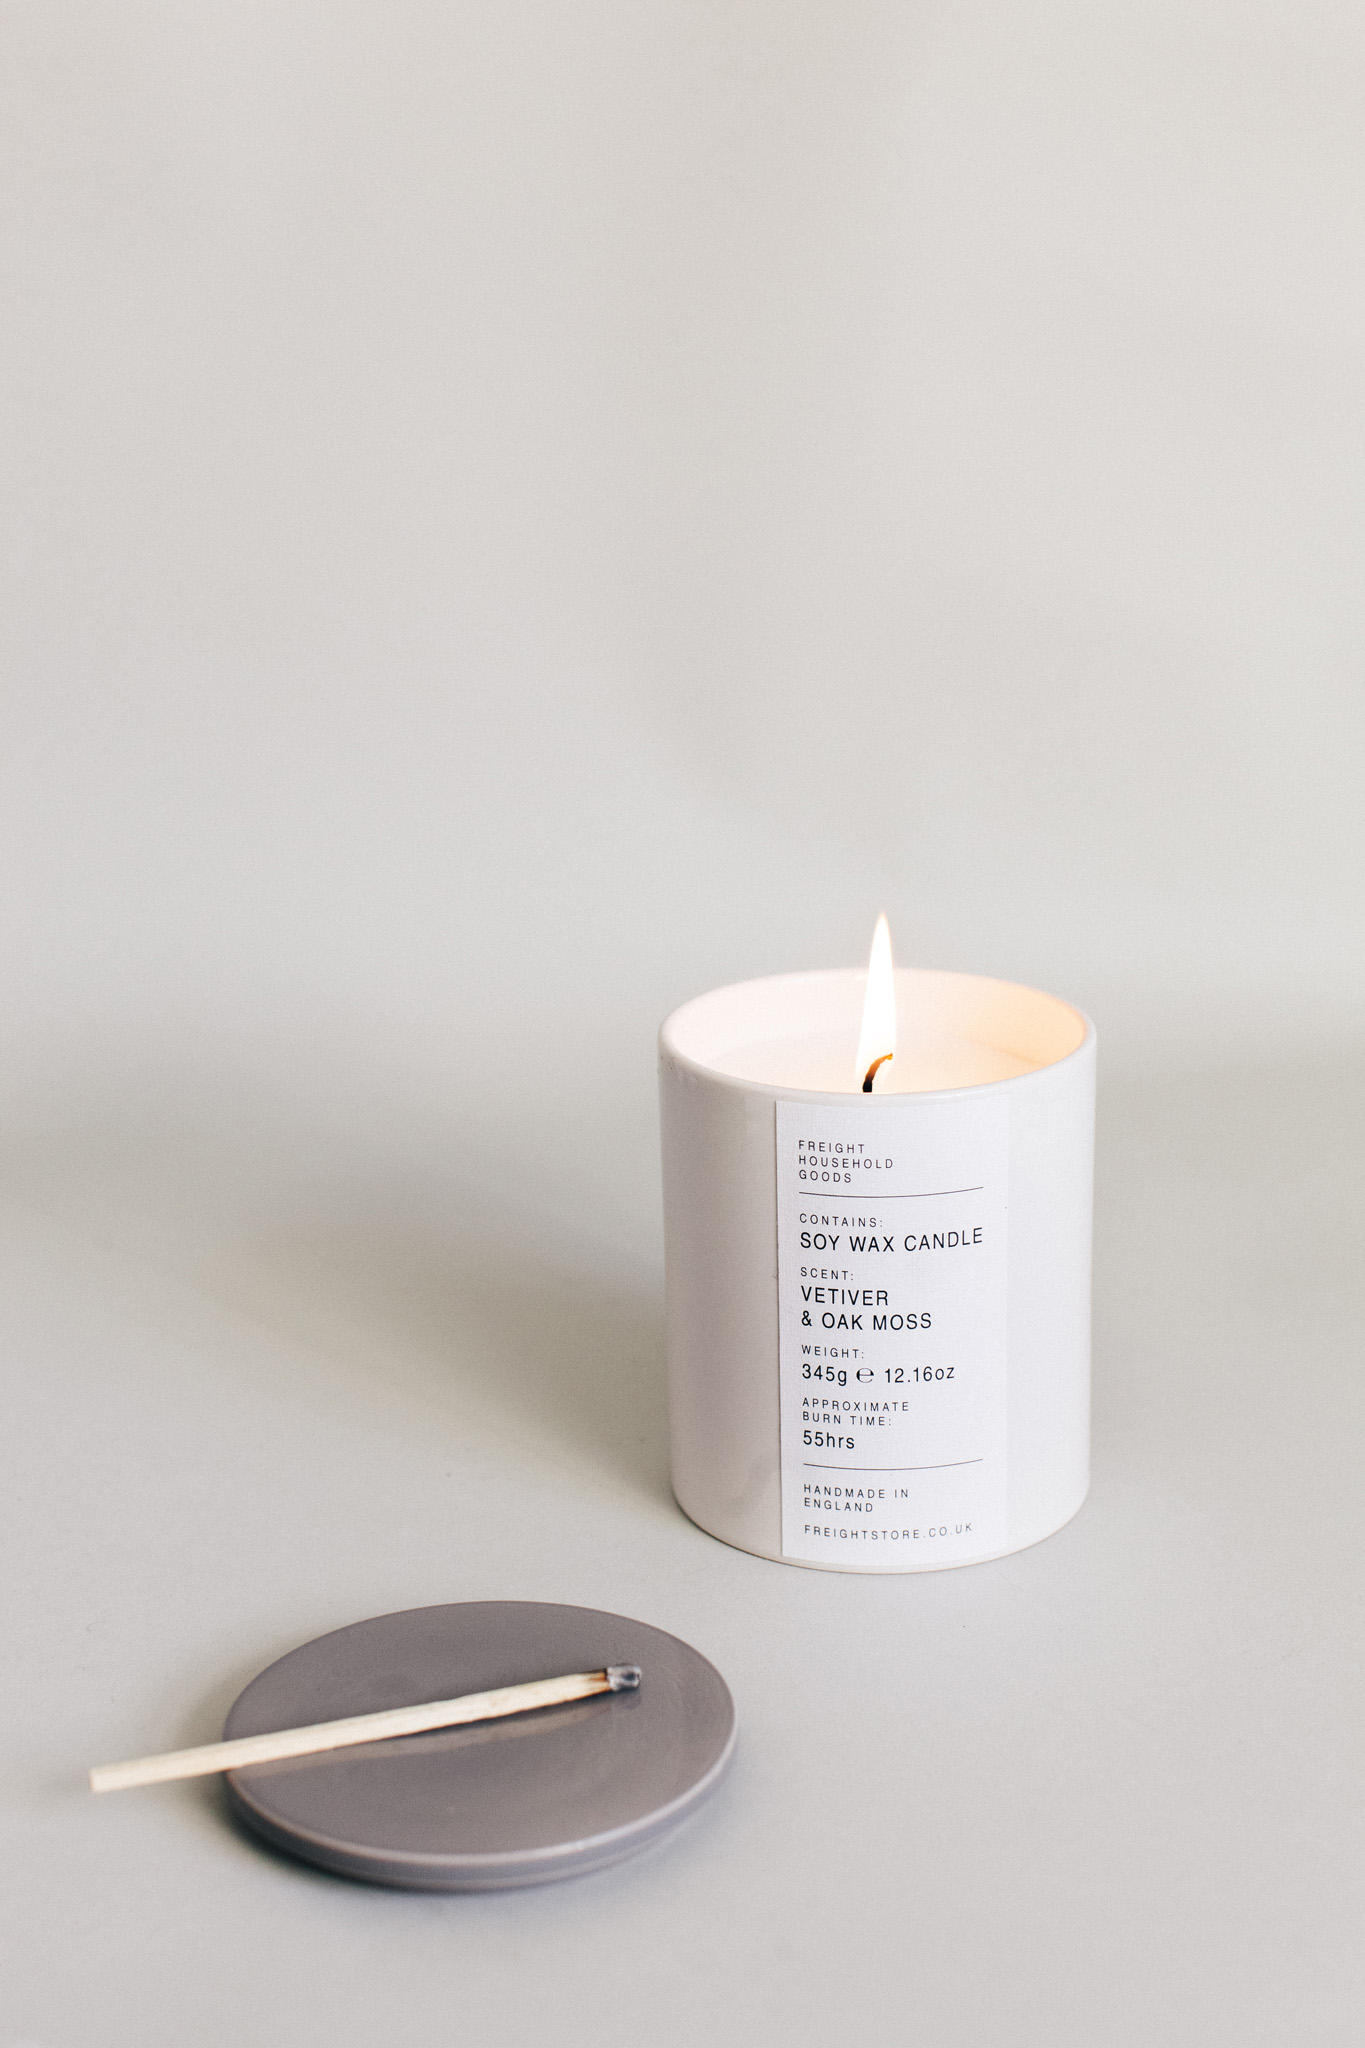 Velvetier and oak moss soy candle by Fright of Lewes. Retreat // Food and lifestyle blog based in Sussex. Photography by Emma Gutteridge.